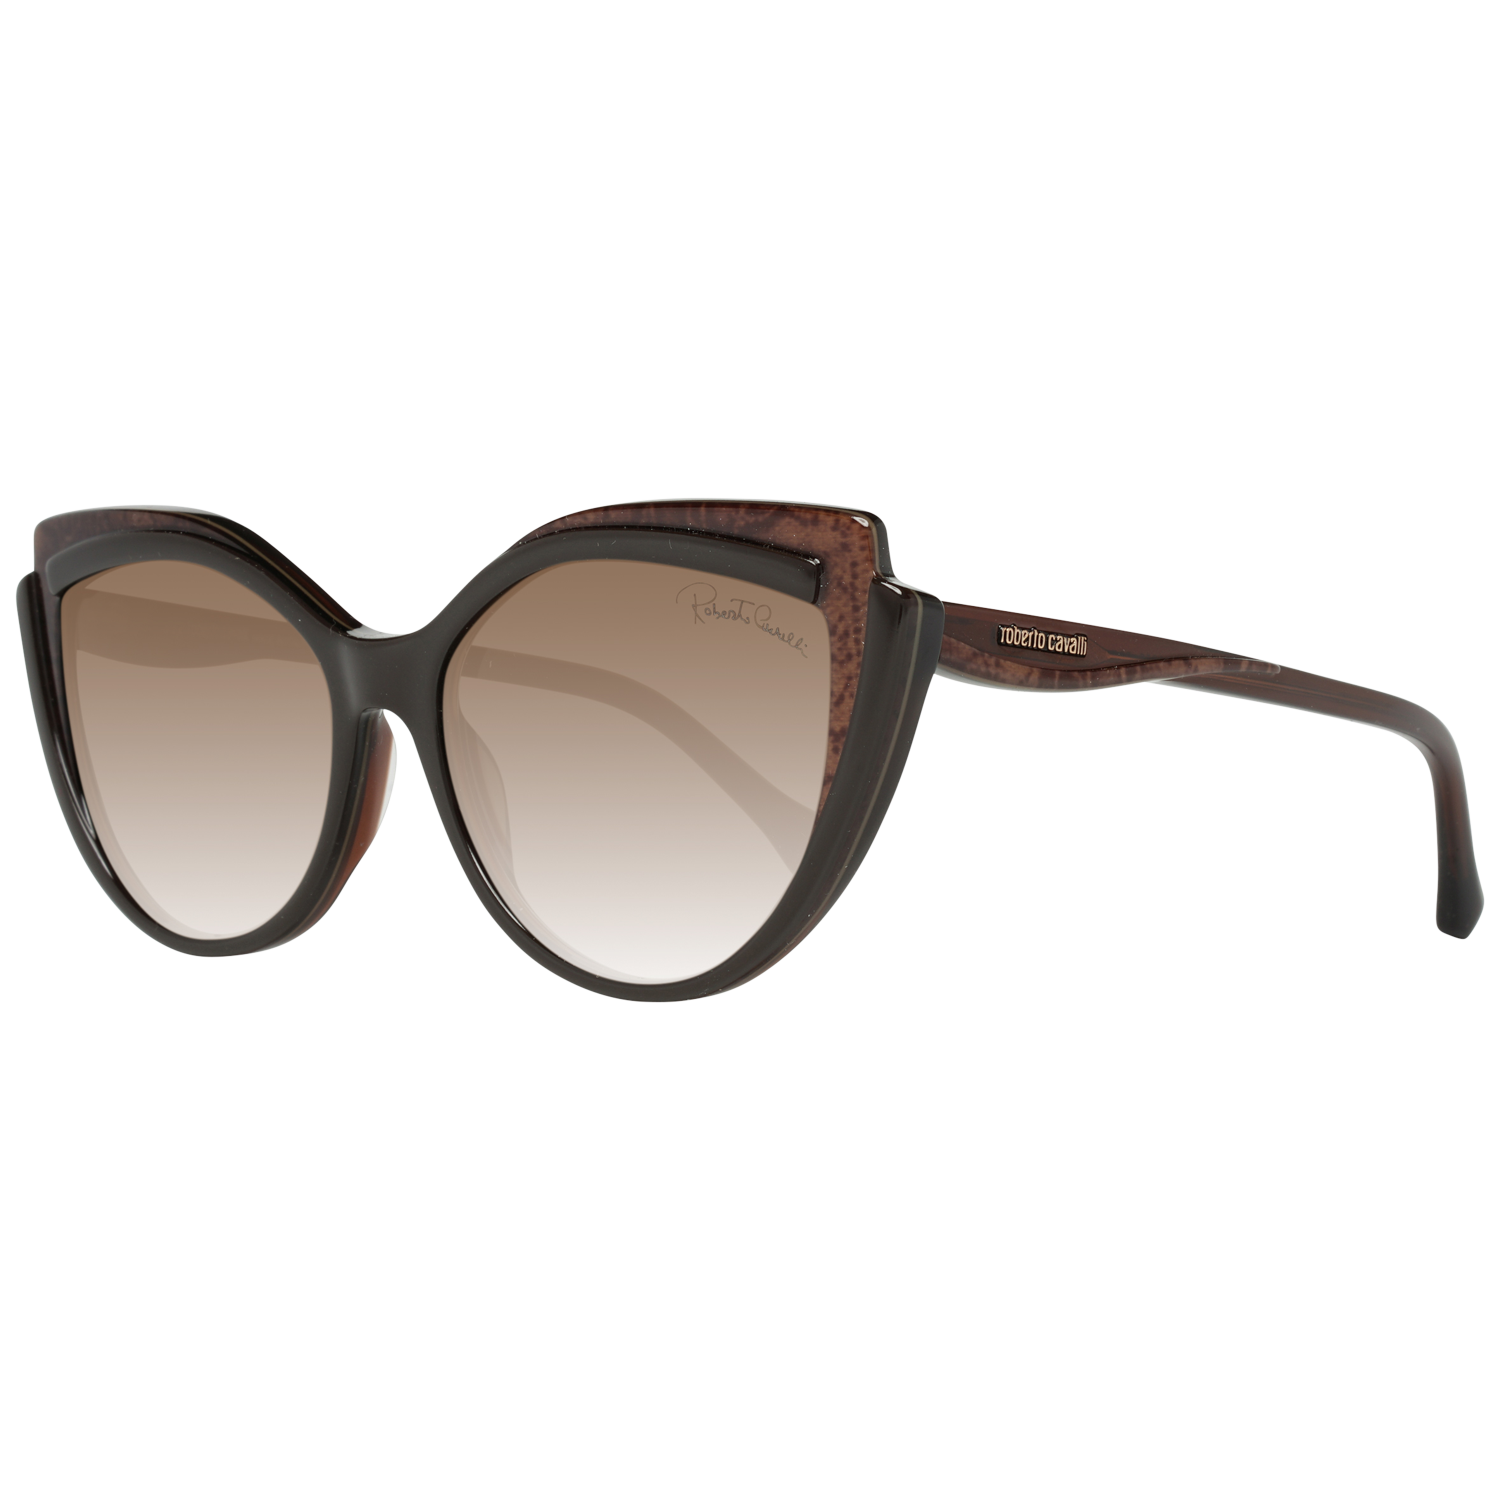 Roberto Cavalli Sunglasses RC1052 50G 58 Women Brown